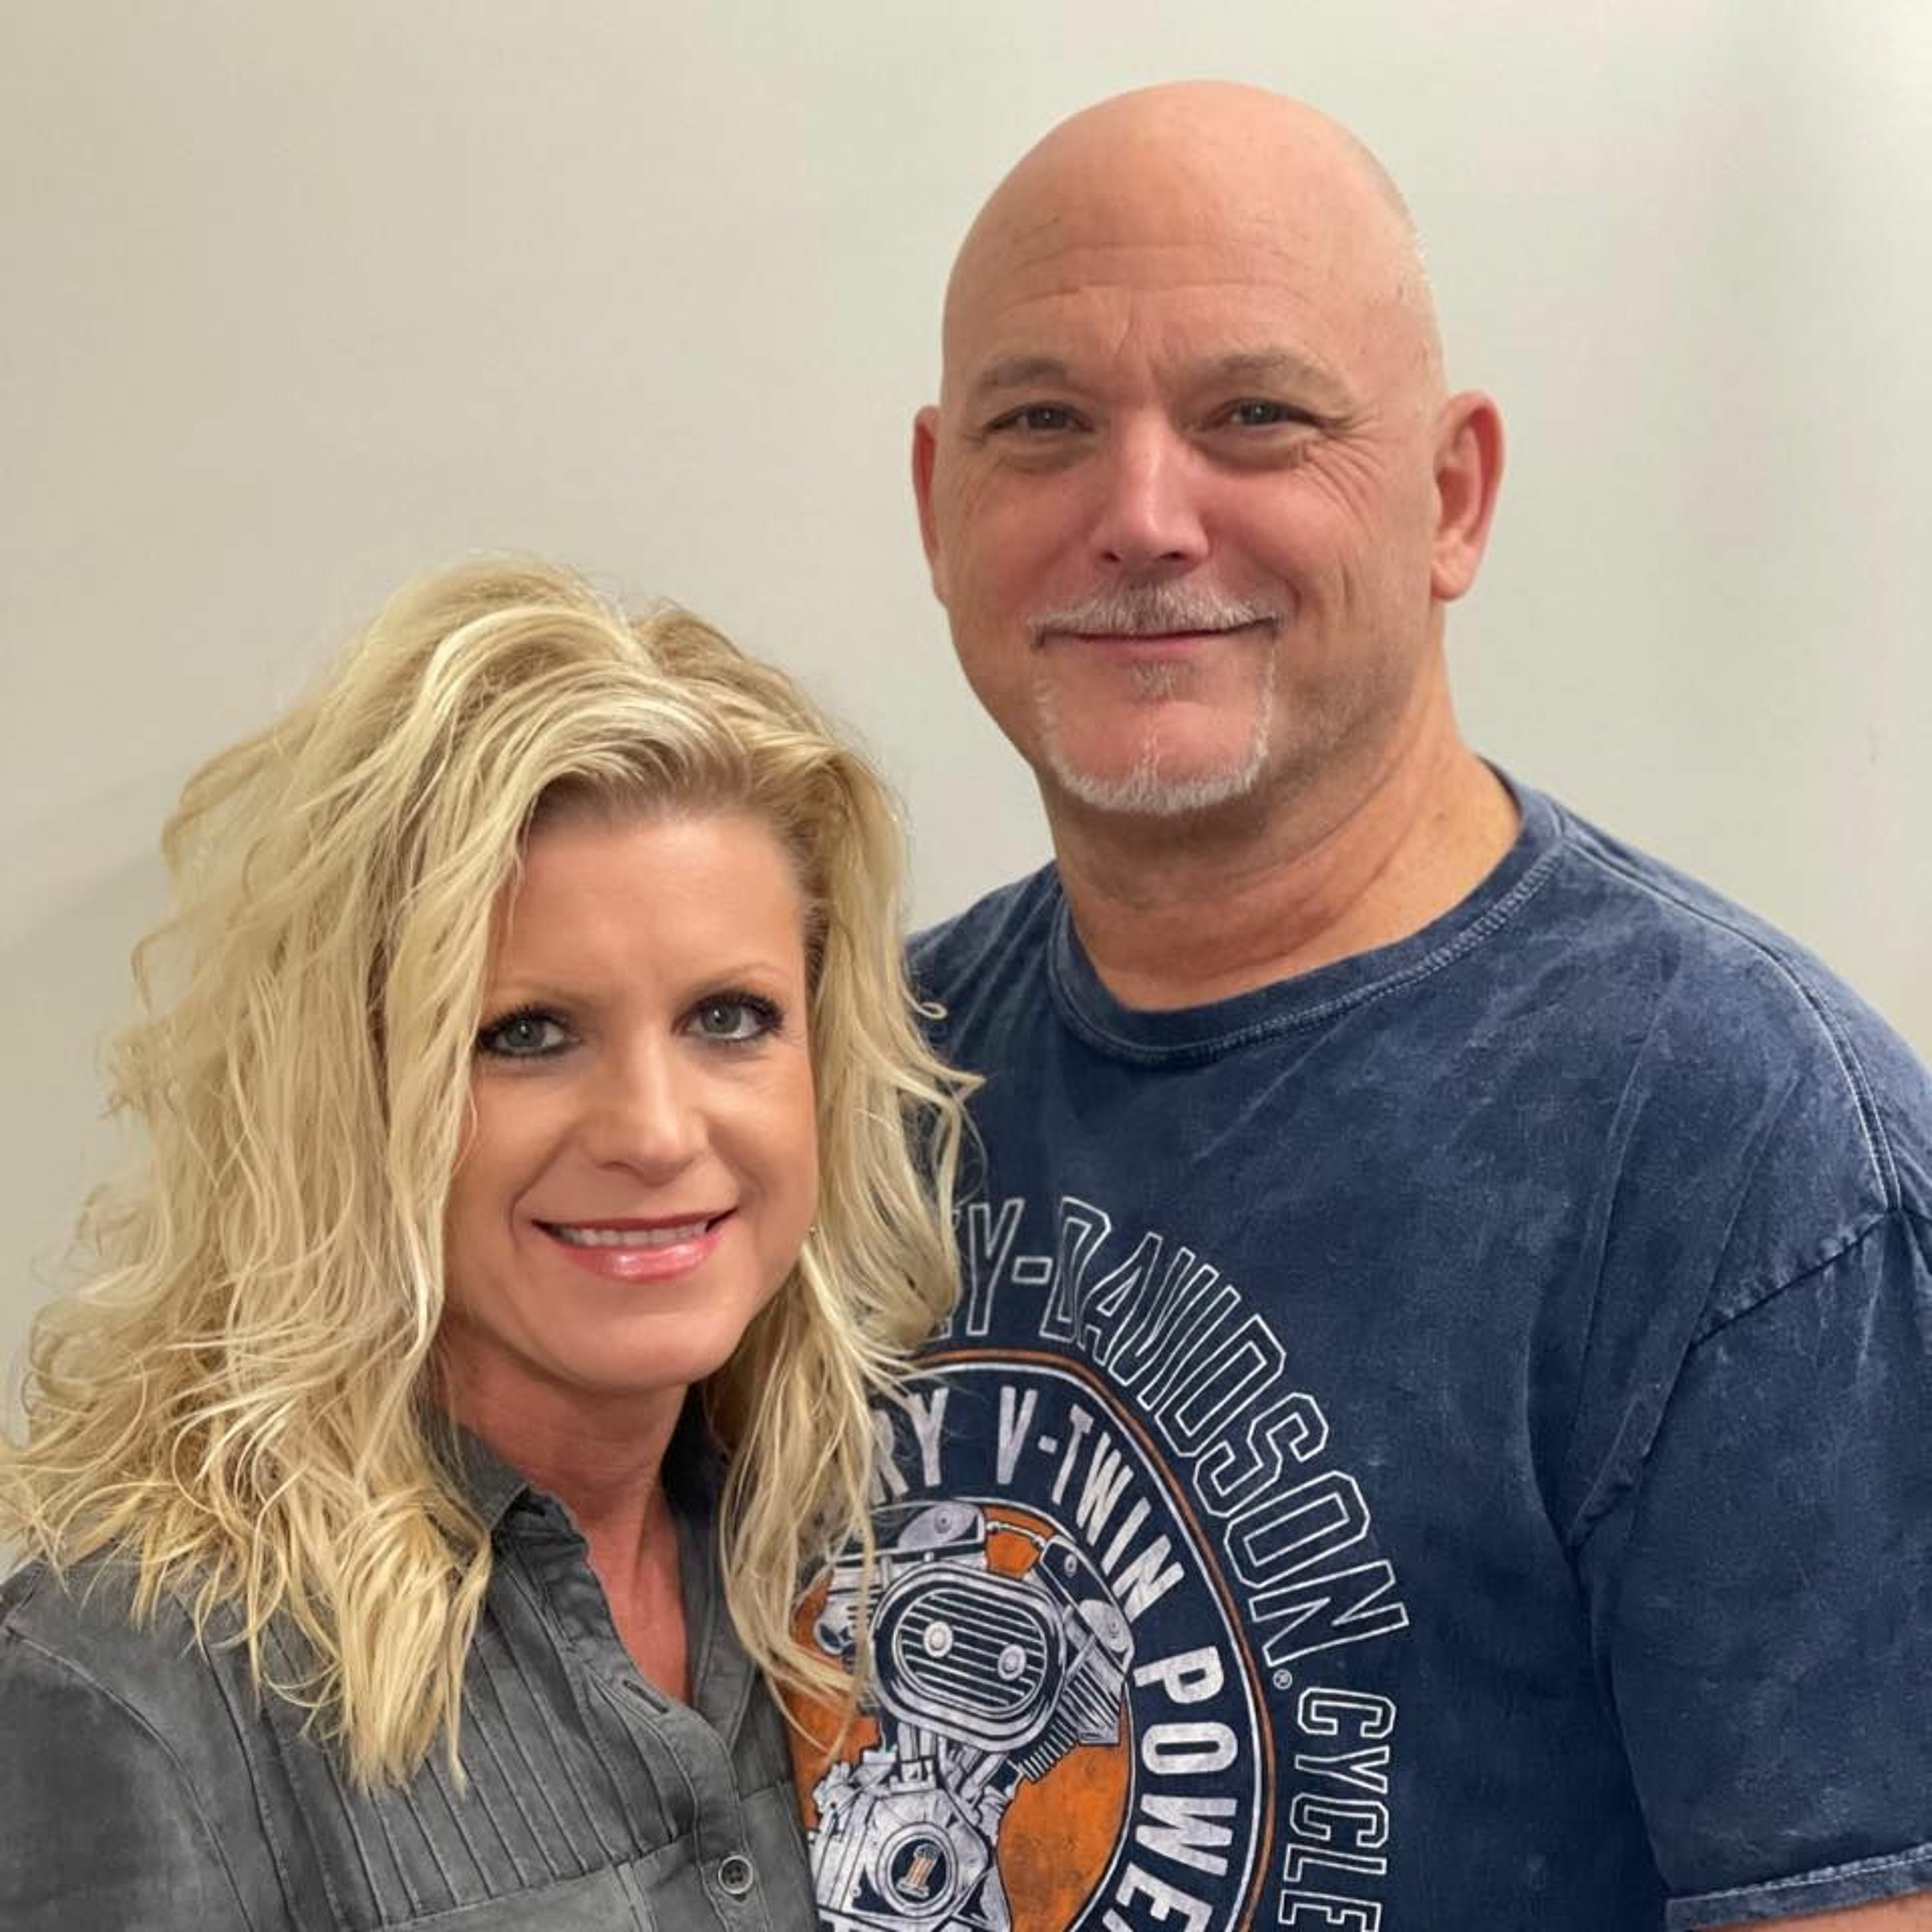 Episode 8610 - Stay in the Race - Angie and Ricky Dean